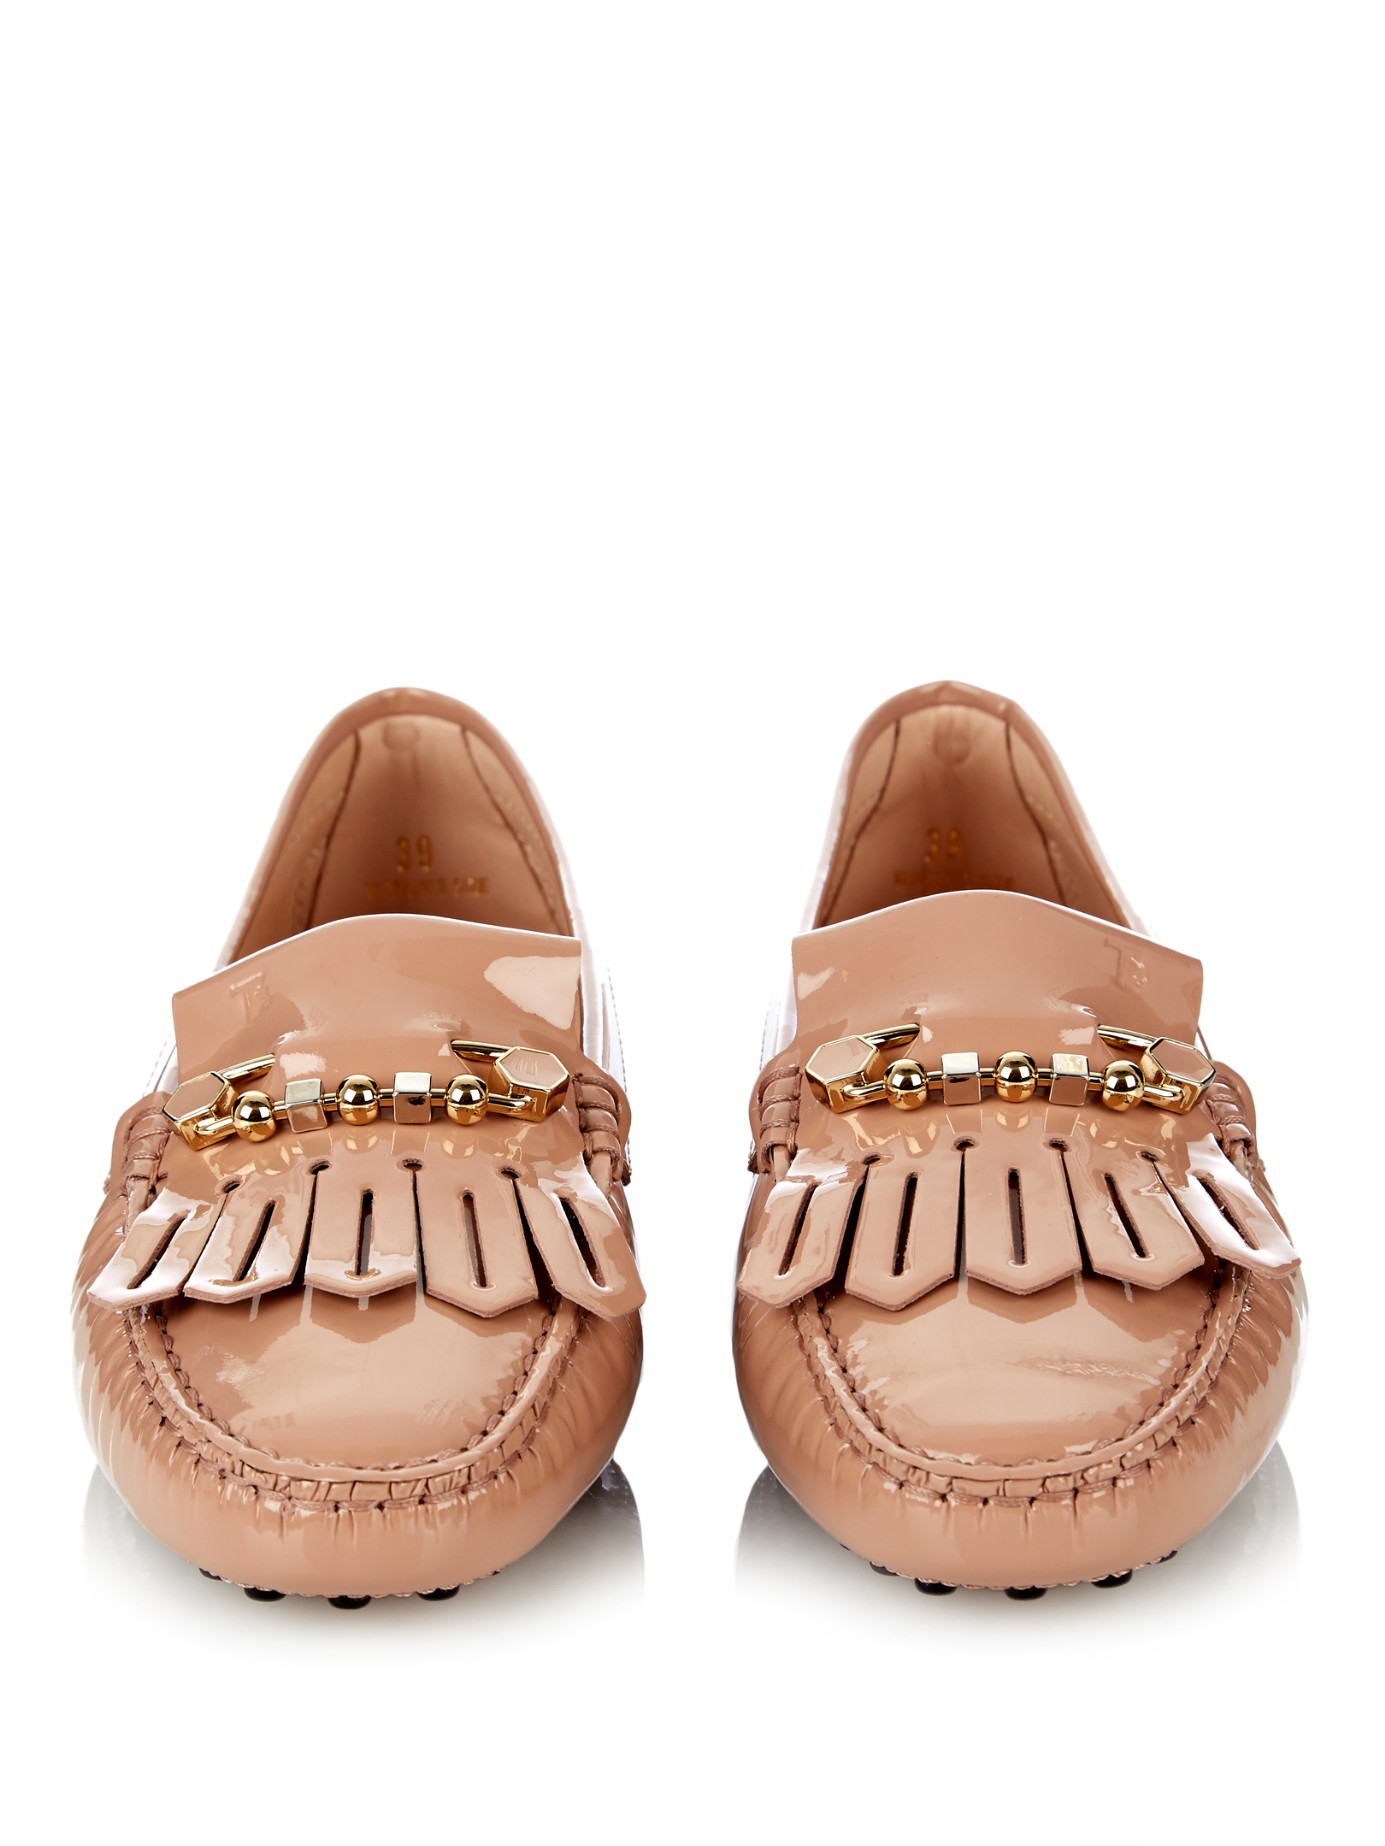 Cheap Professional Buy Sale Online Tod's Gommino fringe leather loafers FZ4Vgq